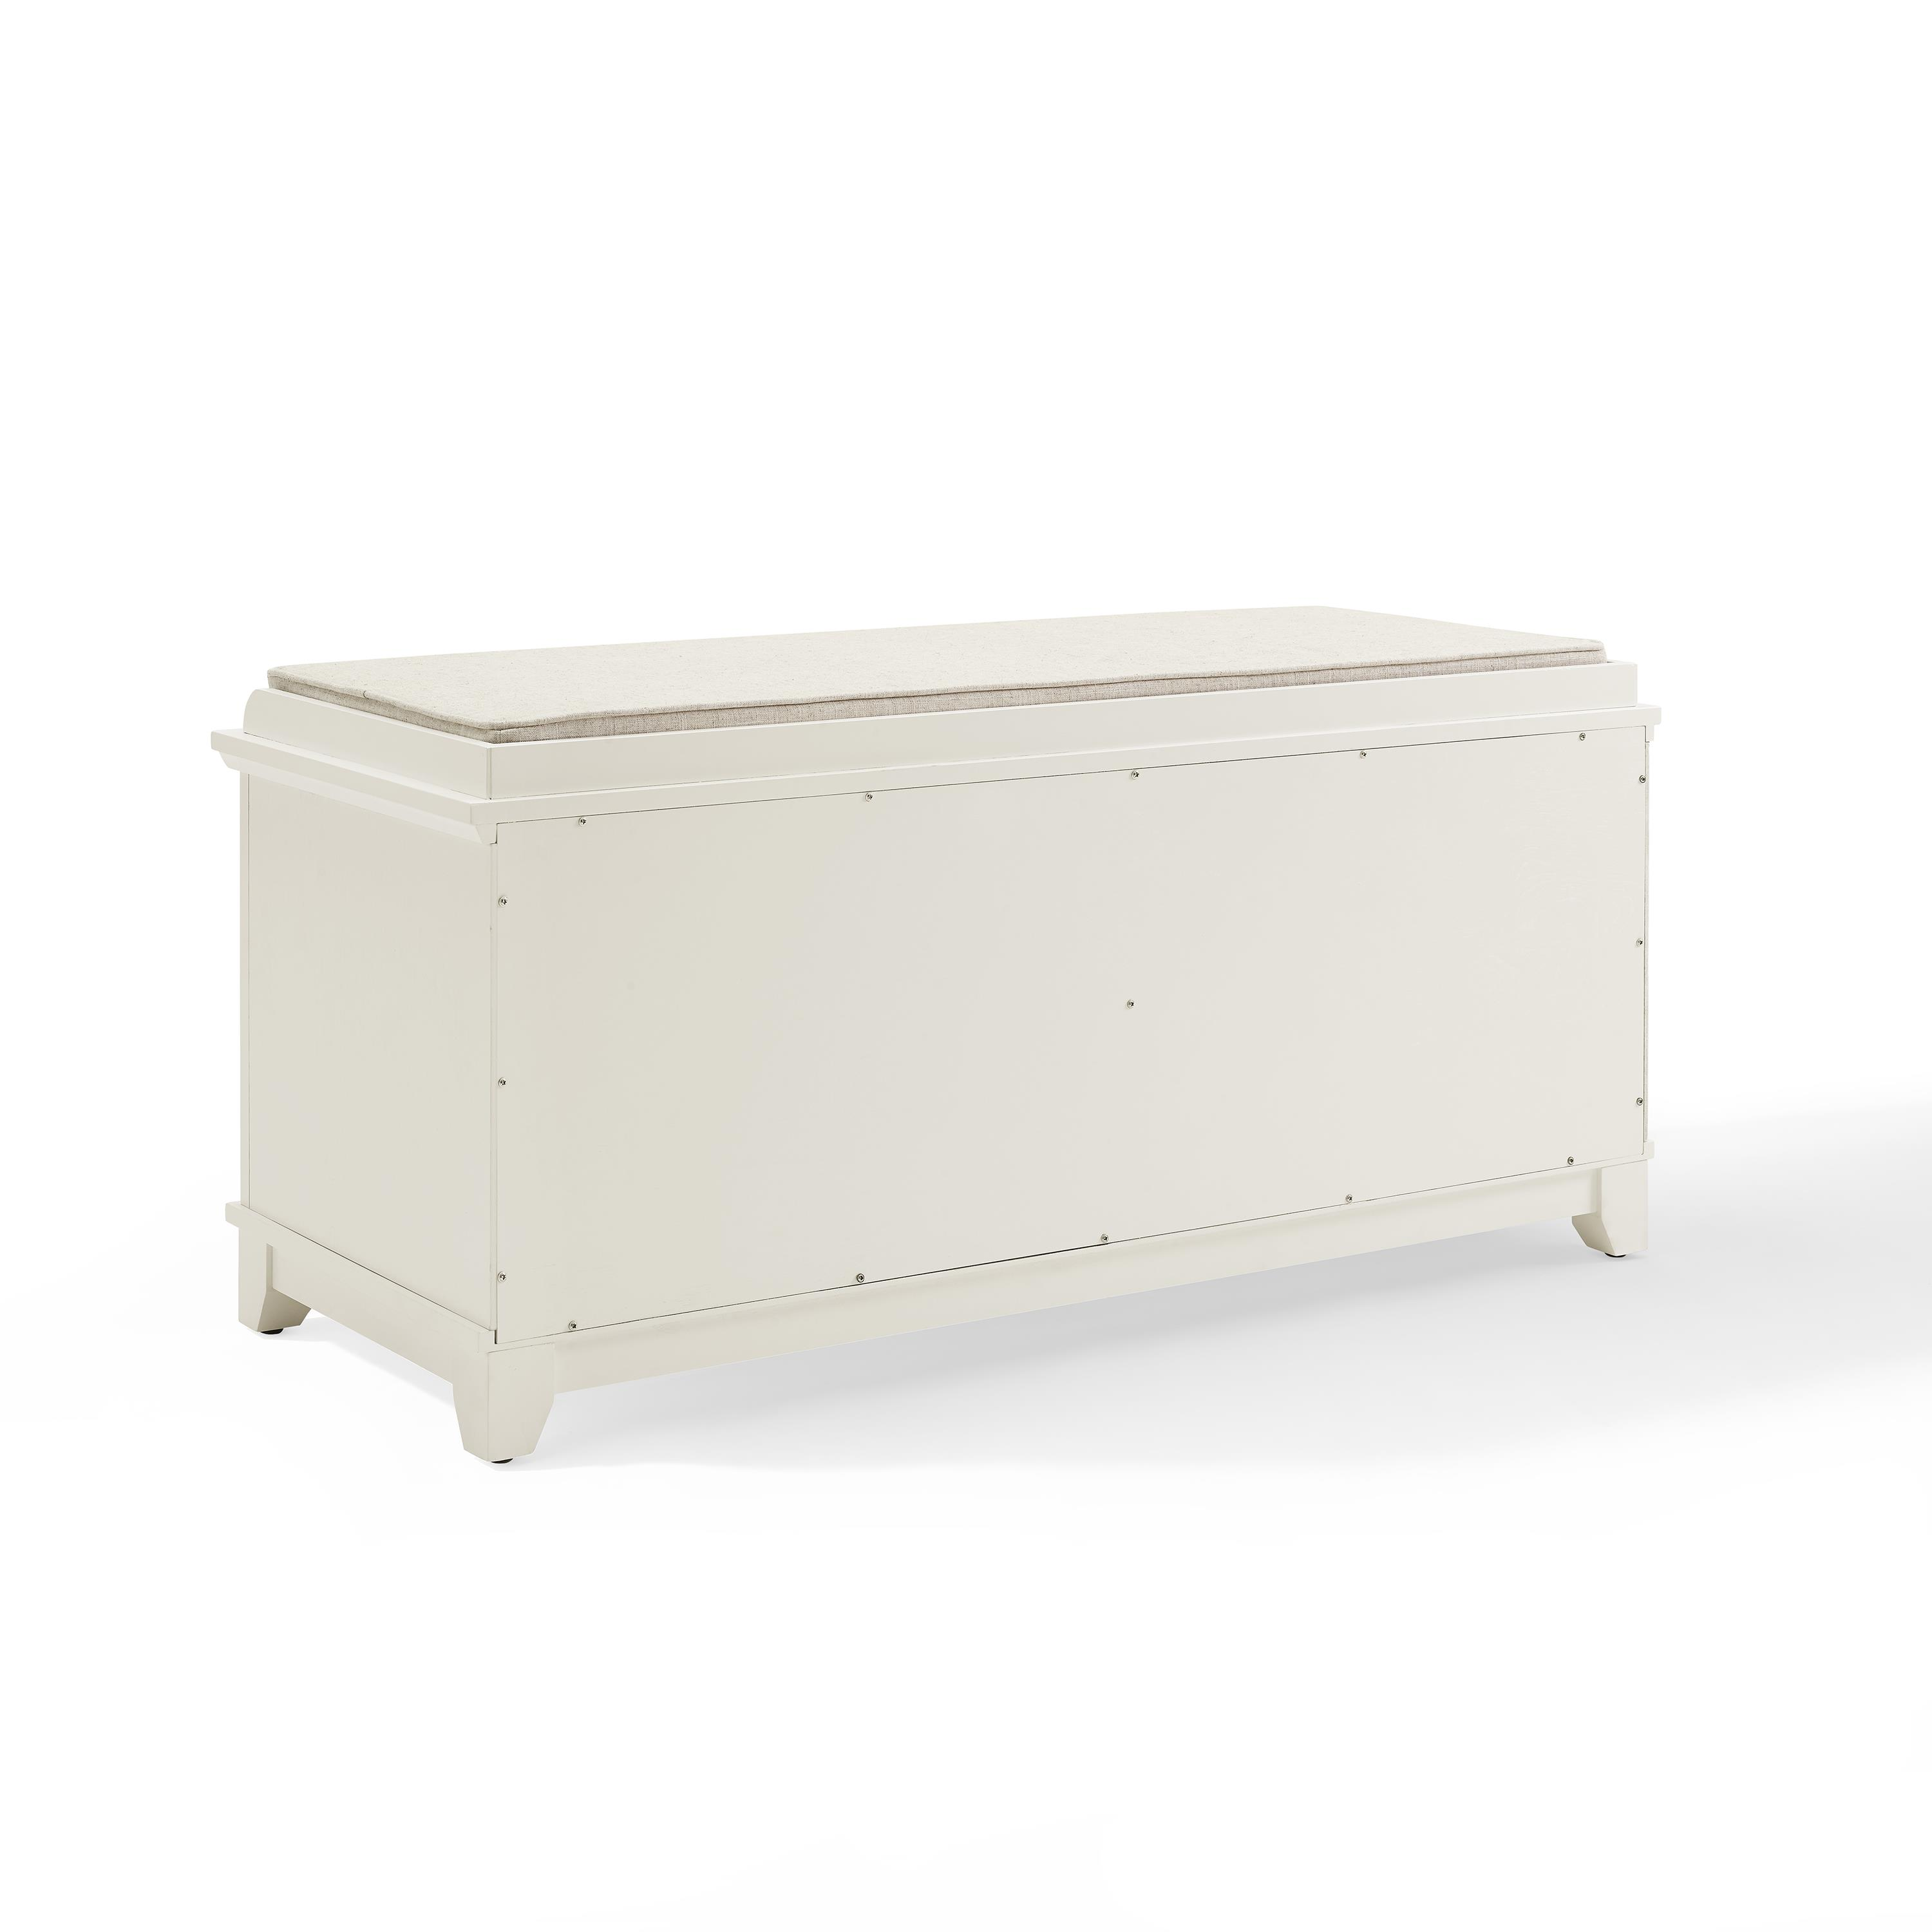 Admirable Crosley Adler Entryway Bench White Cjindustries Chair Design For Home Cjindustriesco